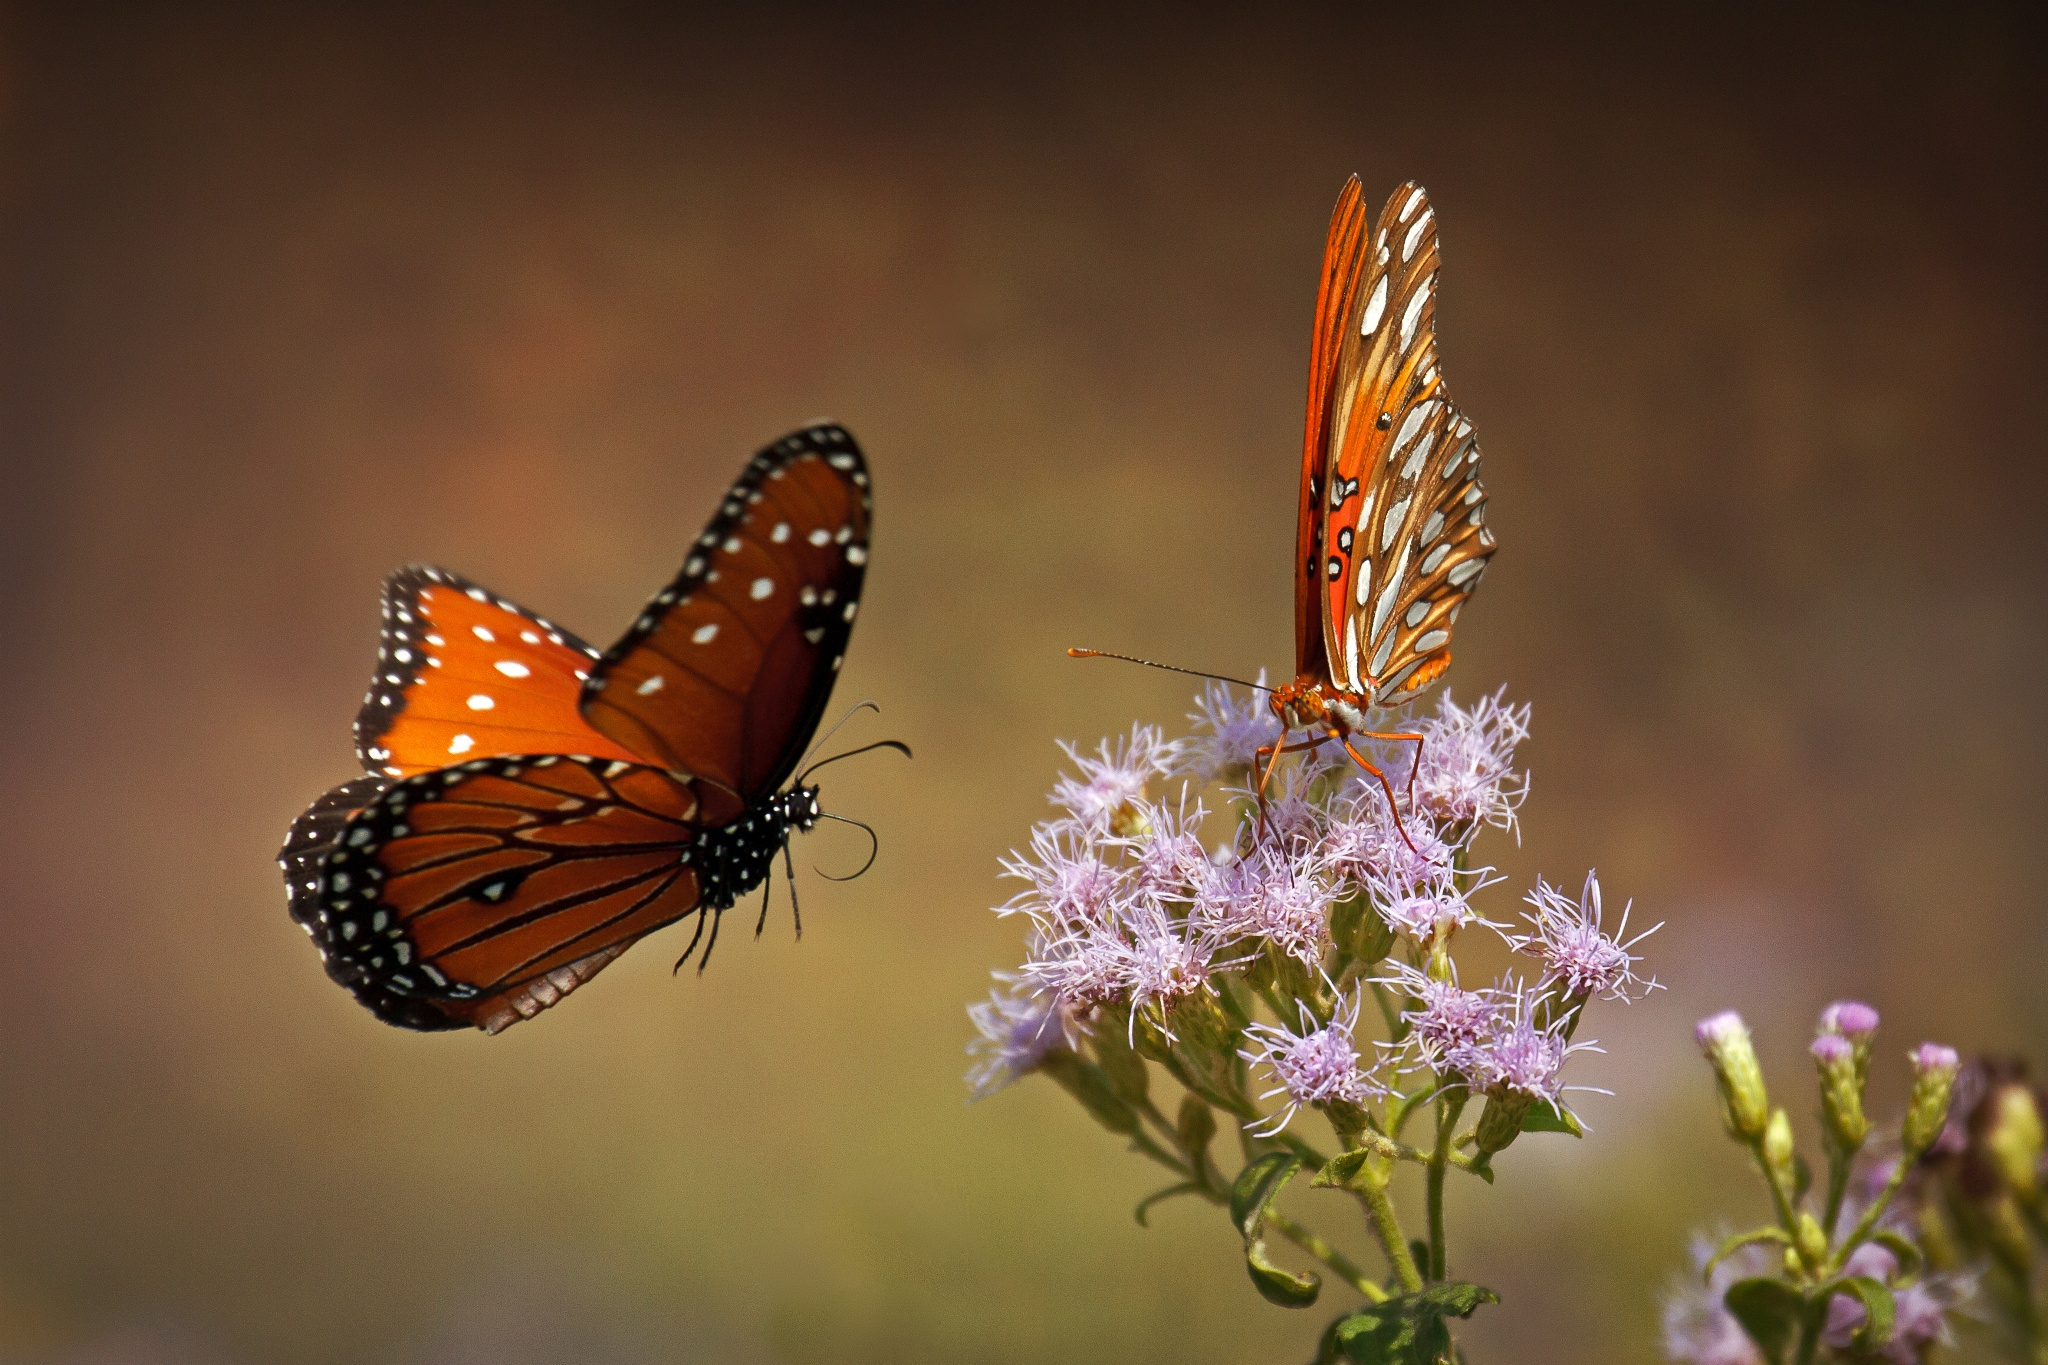 Beautiful Butterfly Girl Wallpaper 500px Blog 187 The Passionate Photographer Community 187 50